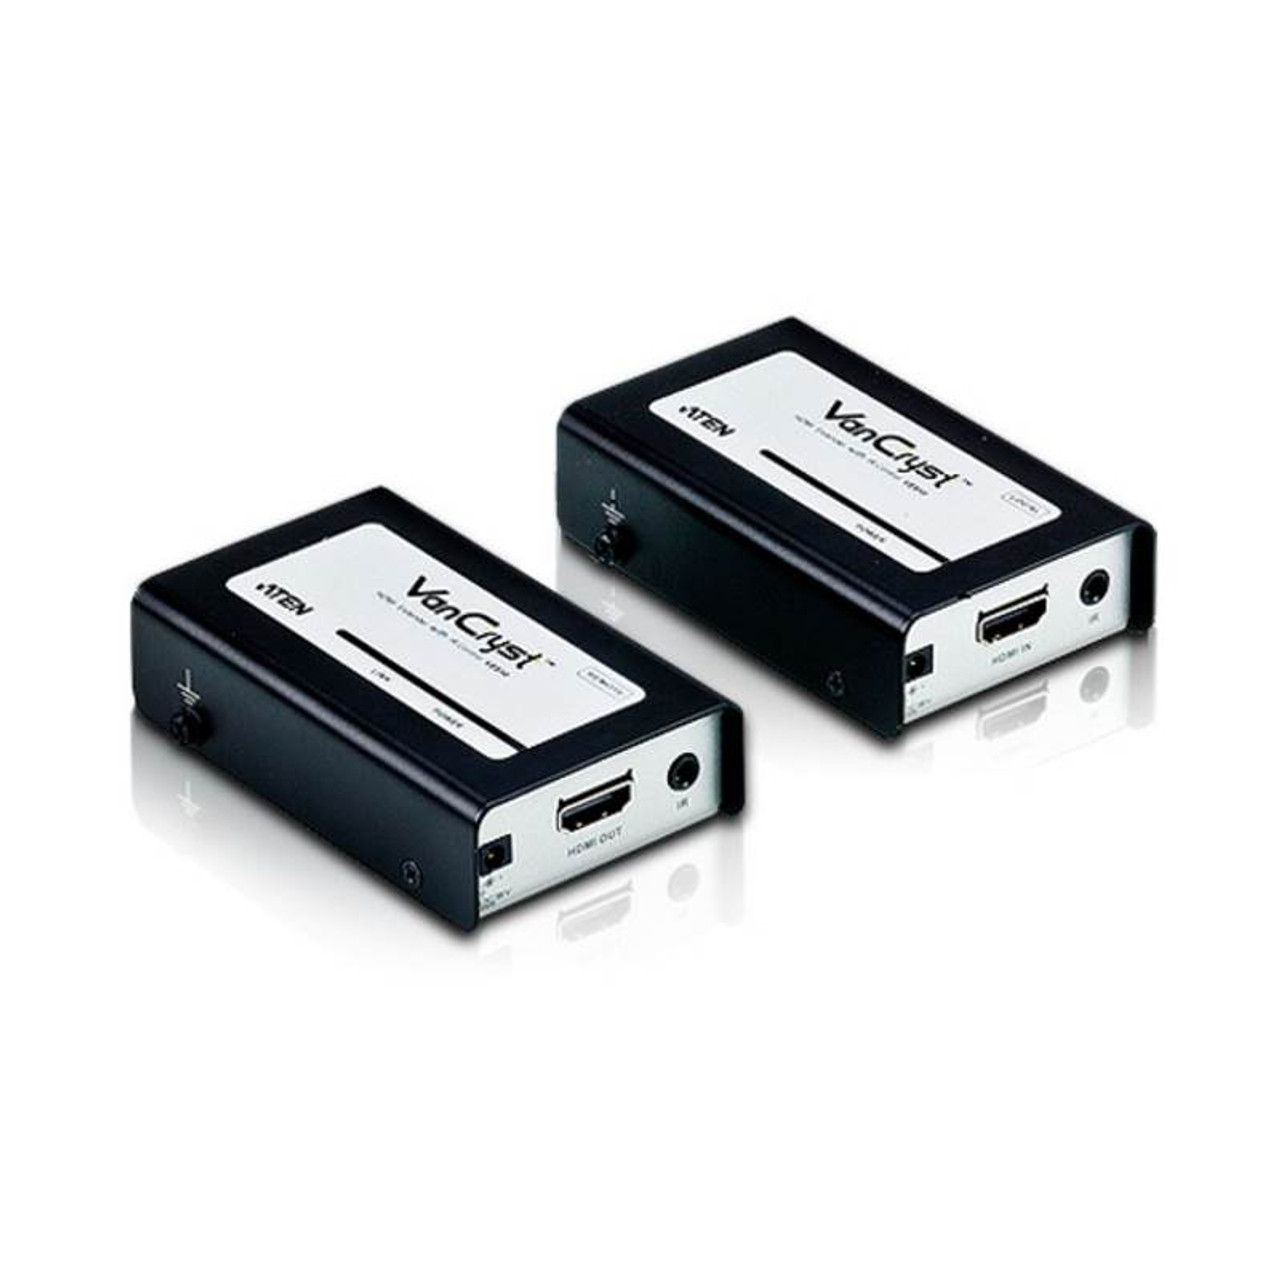 Image for ATEN VanCryst VE810 HDMI Over Cat5 Video Extender with Audio and IR Control CX Computer Superstore